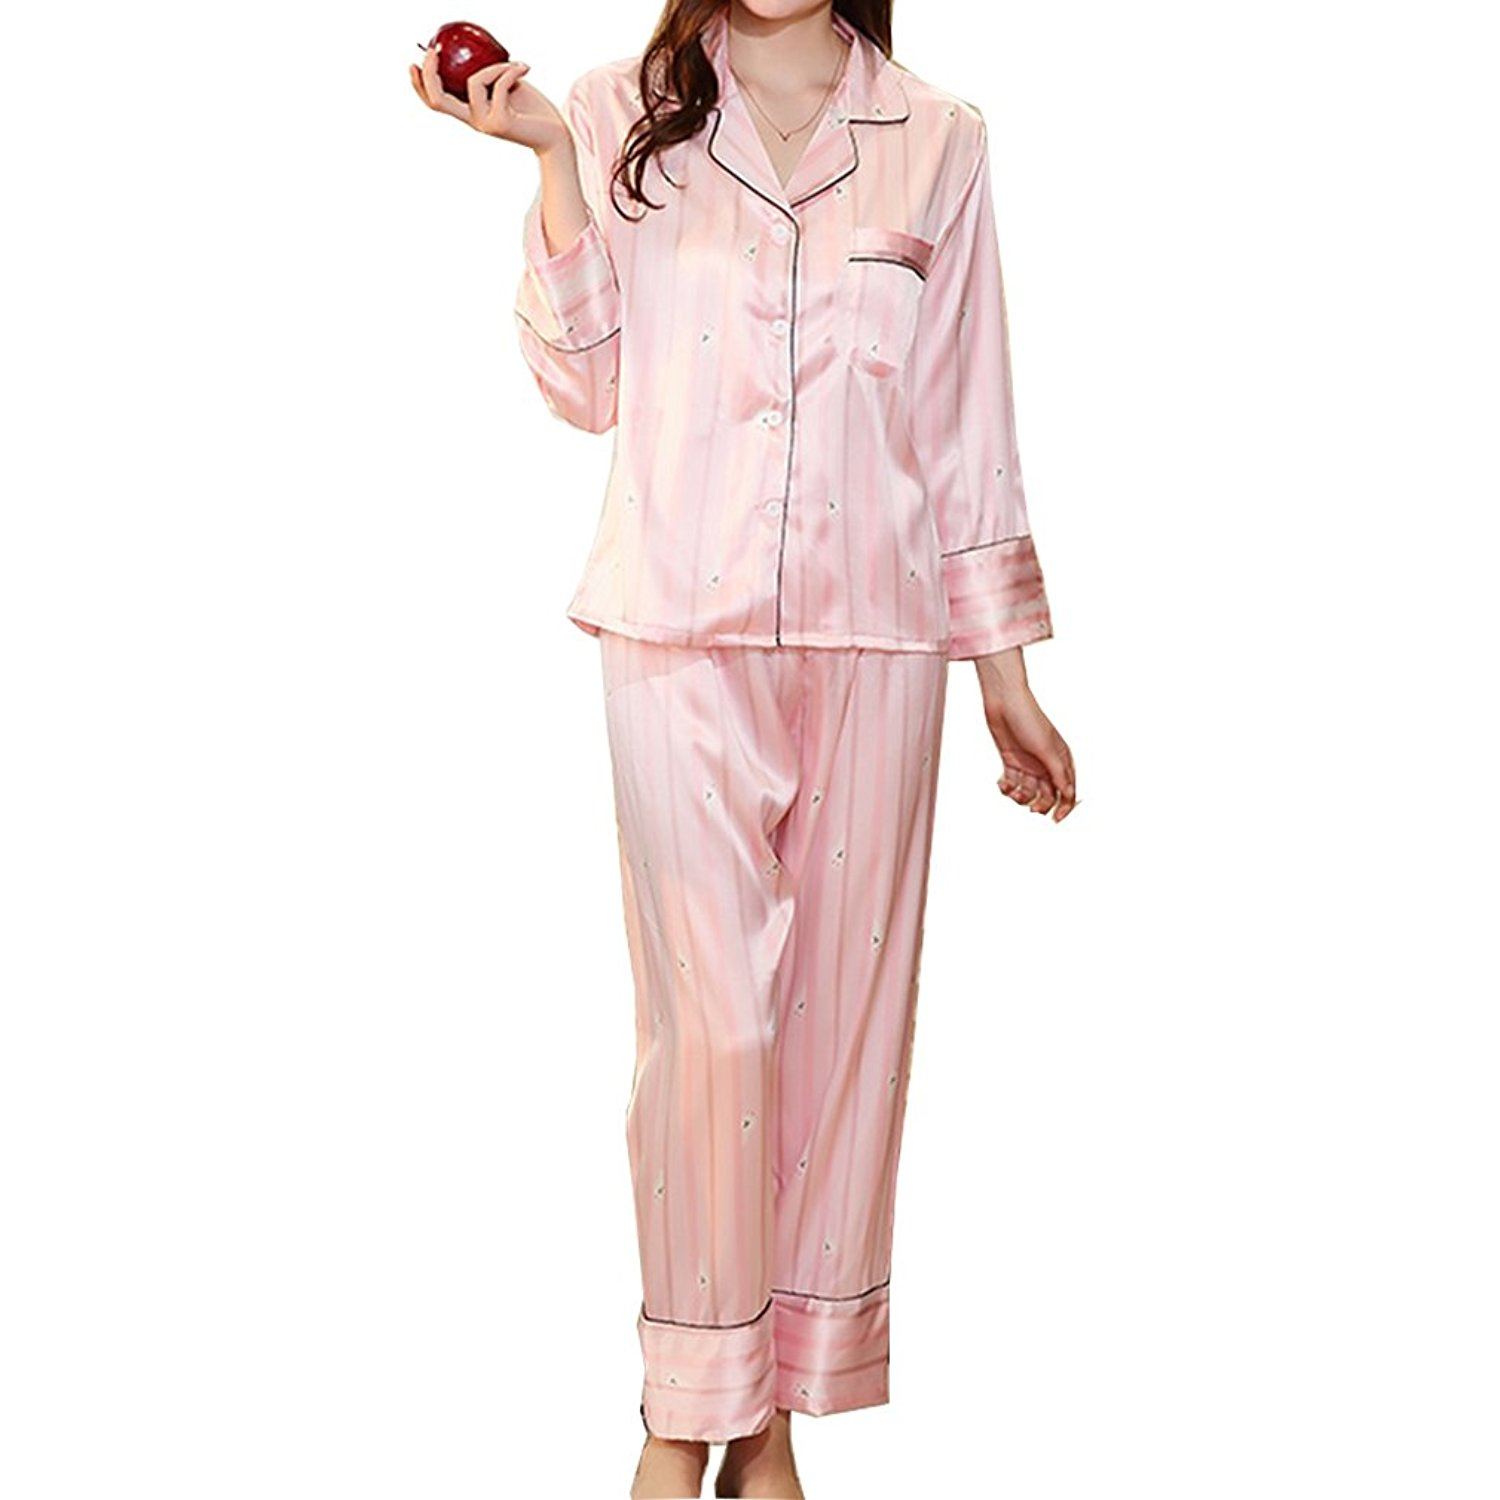 f84e223af5 Get Quotations · BOYANN Striped Rabbit Satin Pajamas Women s Long Sleeve Nightwear  Silk Sleepwear Pink